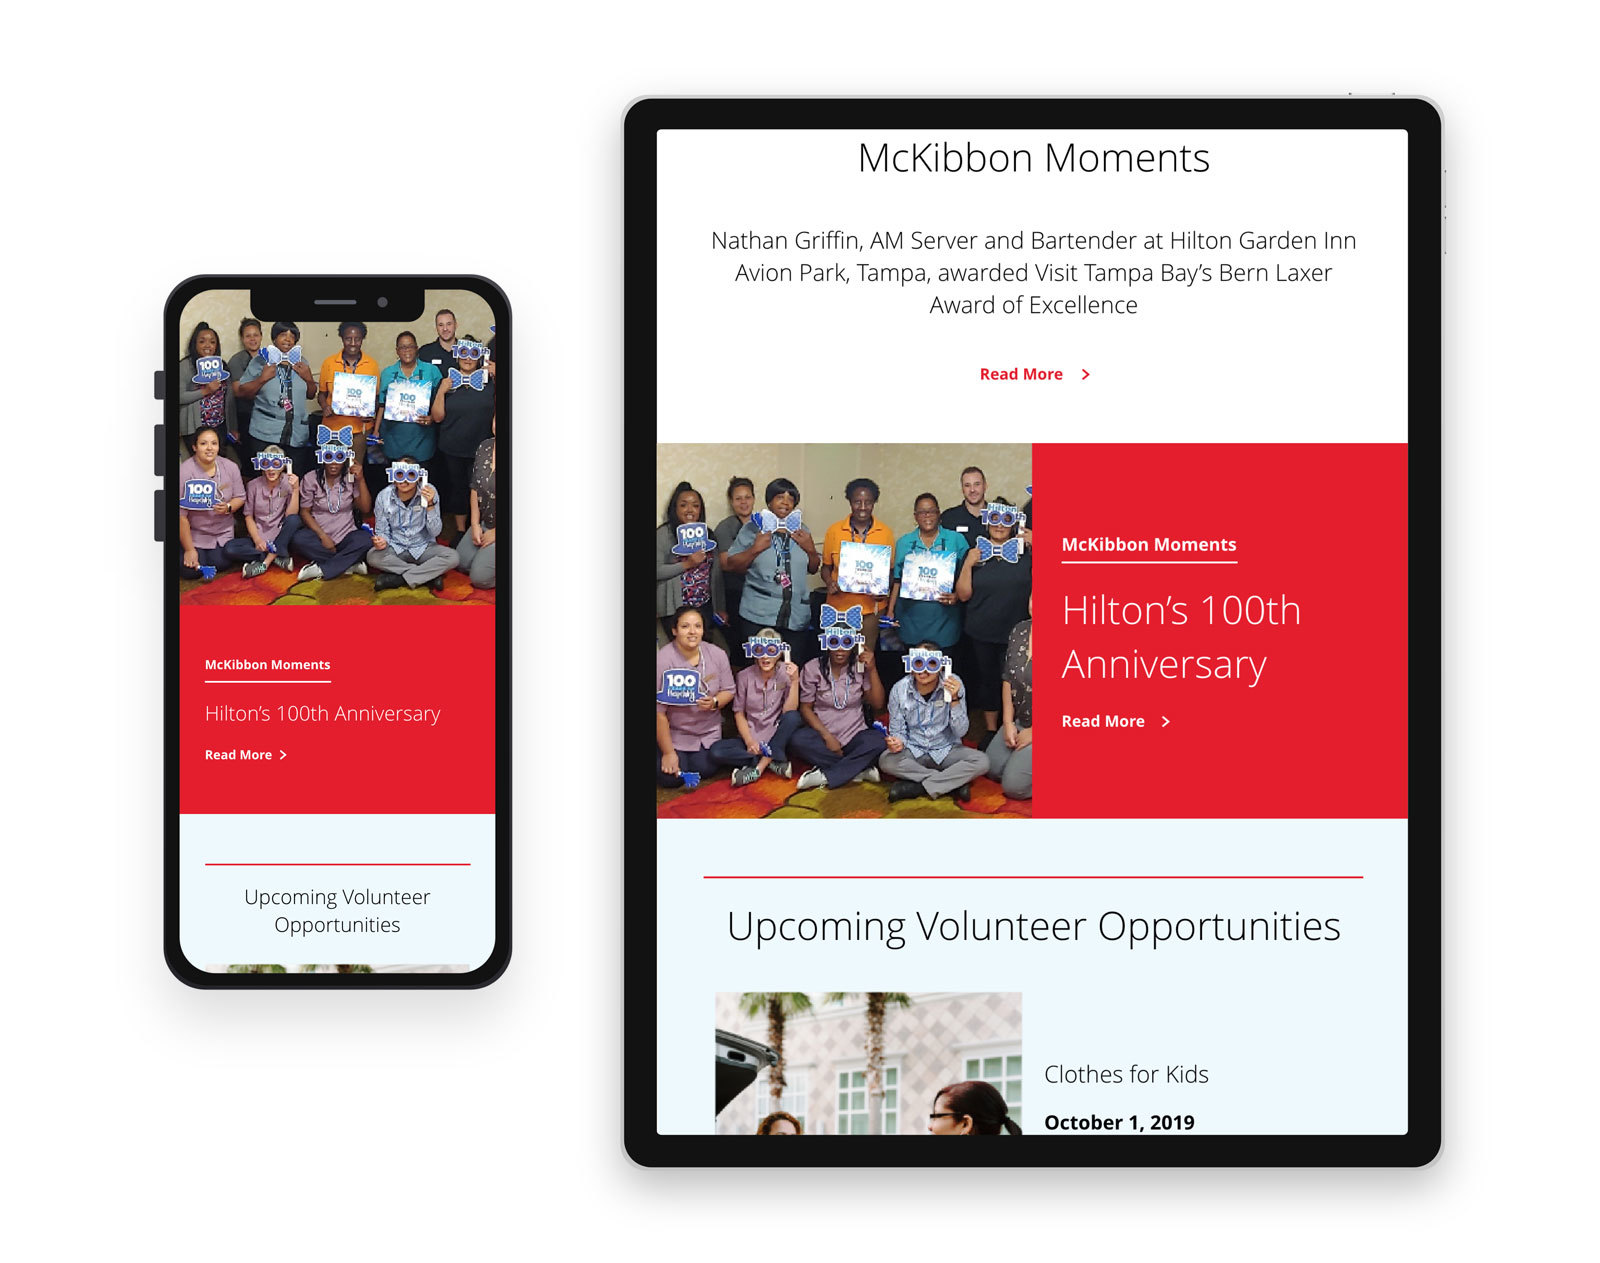 McKibbon Home Newsletter Blog Post 2 - View on mobile device and tablet